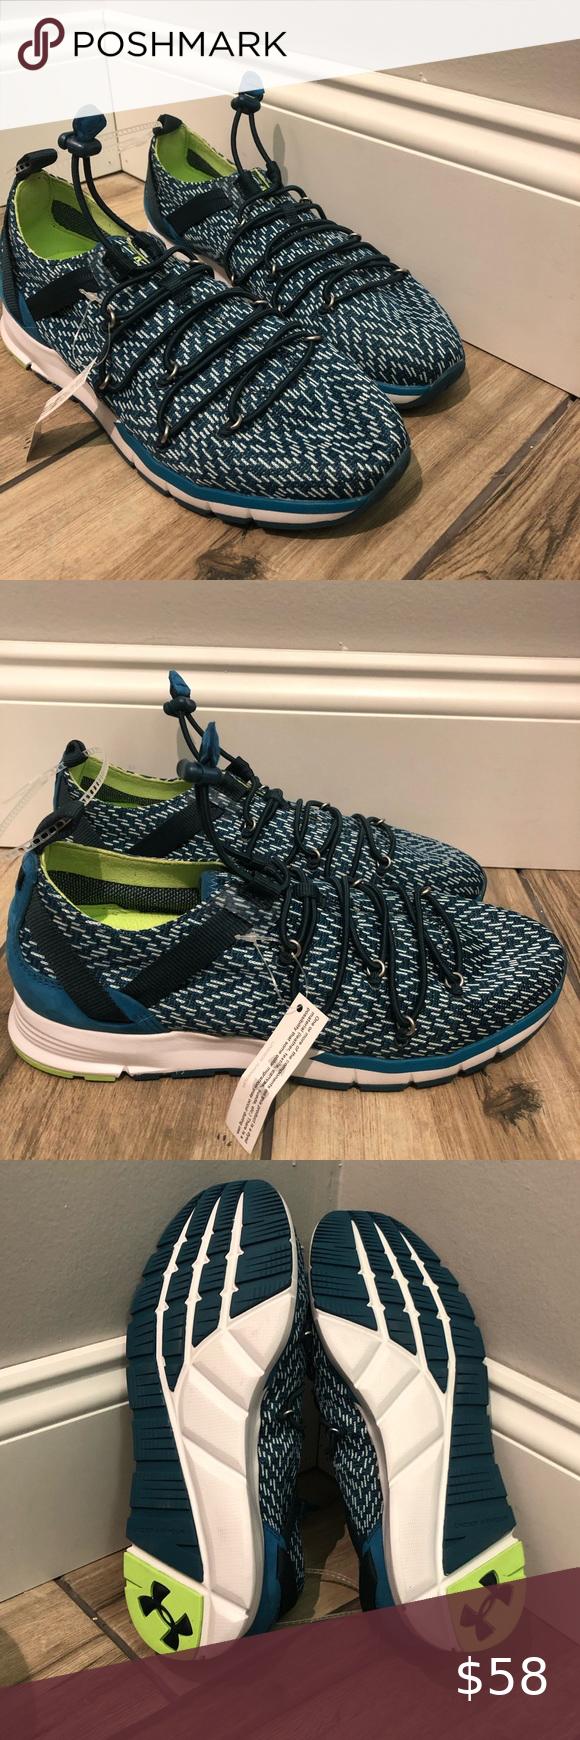 Under Armor charged speed knit shoe